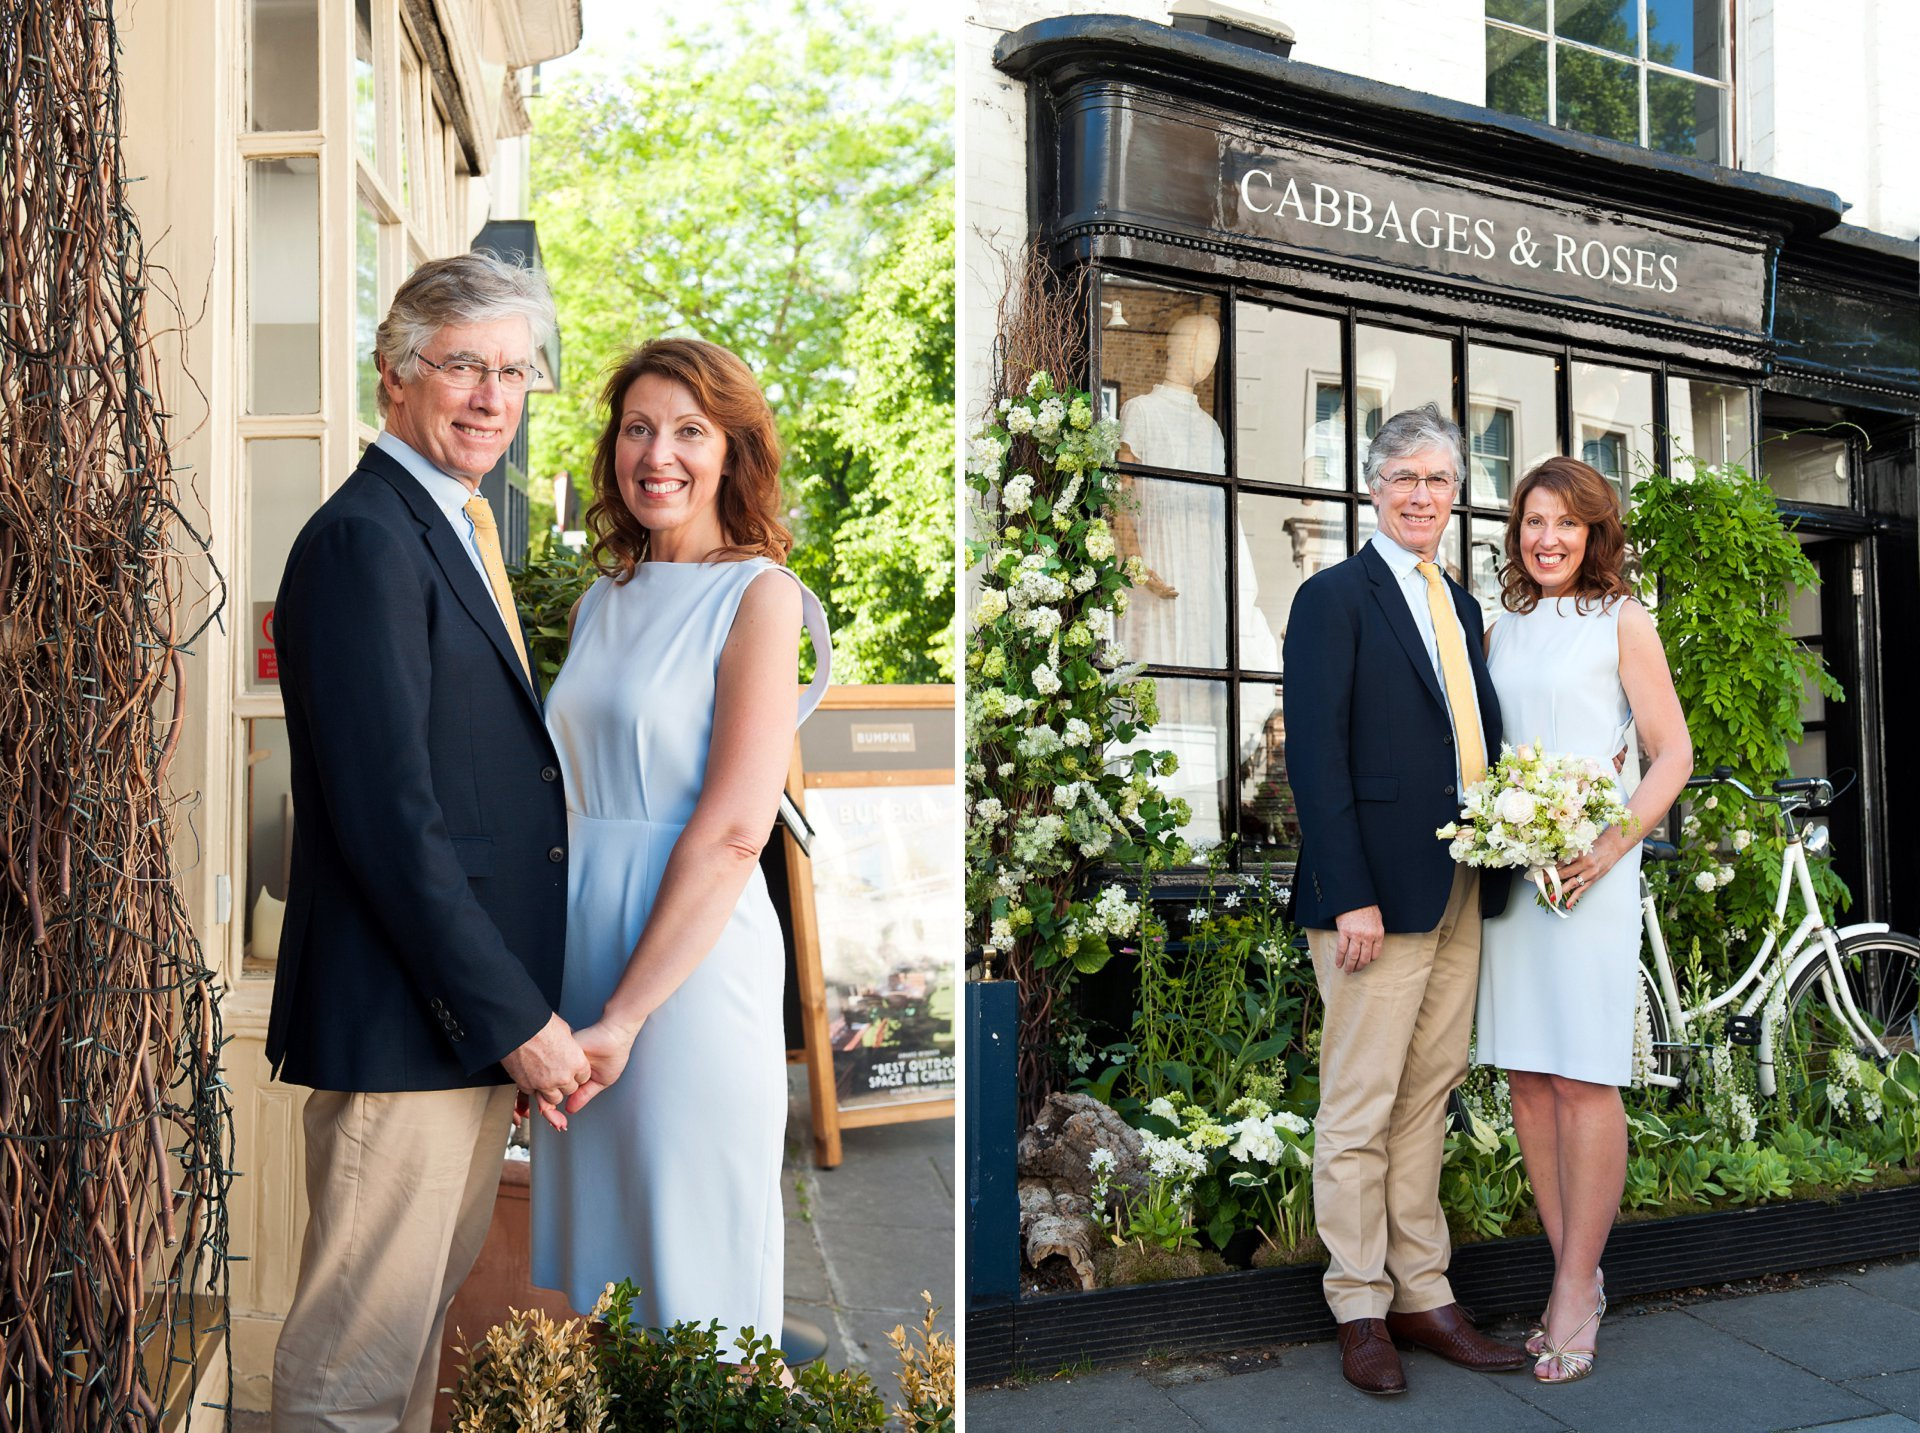 Chelsea Old Town Hall Wedding Photography - a bride and groom pose outside shop Cabbages & Roses on Sydney Street in London's Chelsea. Chelsea Flower show encourages all of the local shops, pubs and restaurants to decorate their shopfronts with flowers and Cabbages and Roses chose a vintage, quintisentially English display